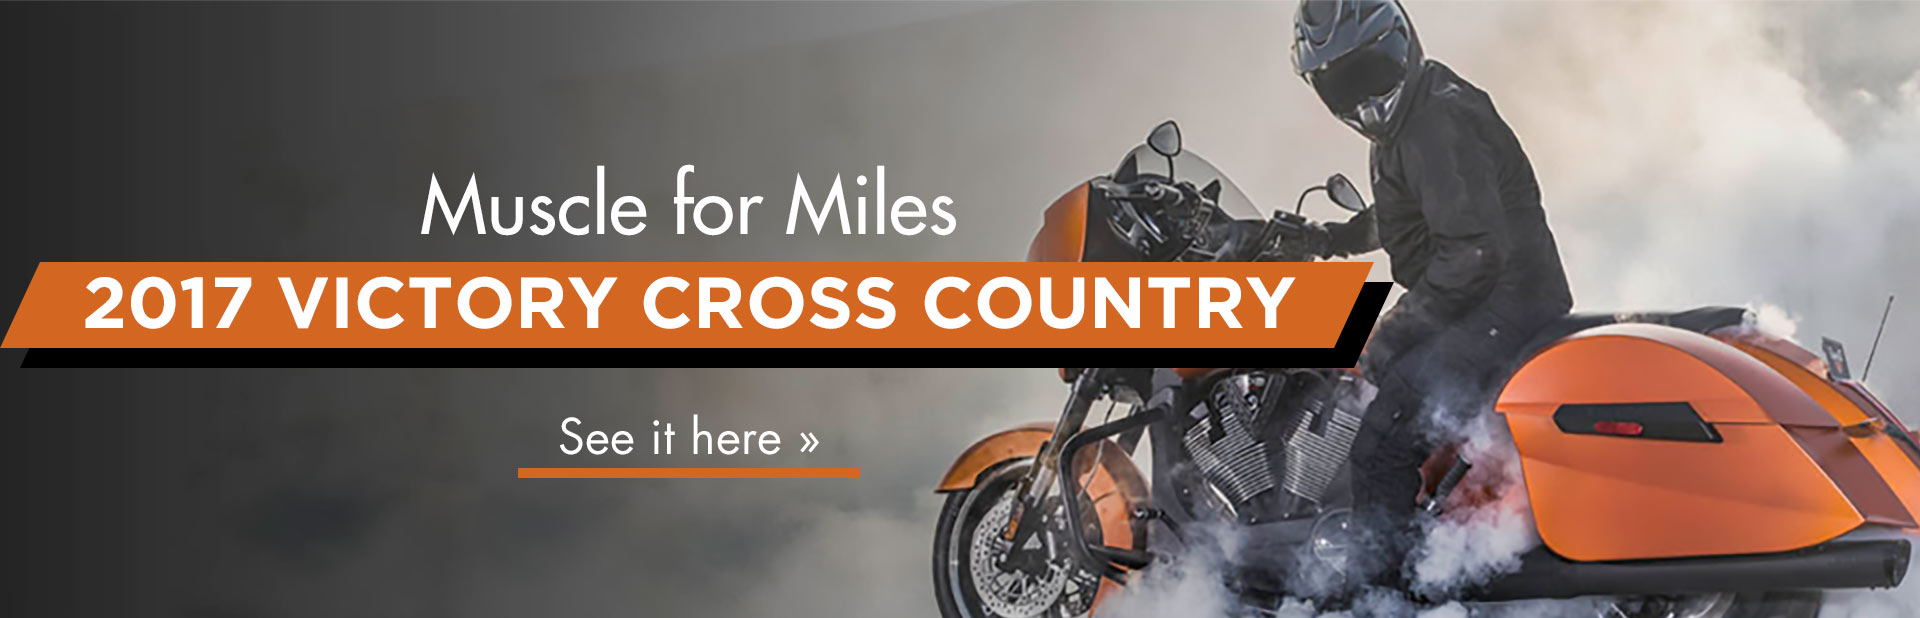 2017 Victory Cross Country®: Click here to view the model.